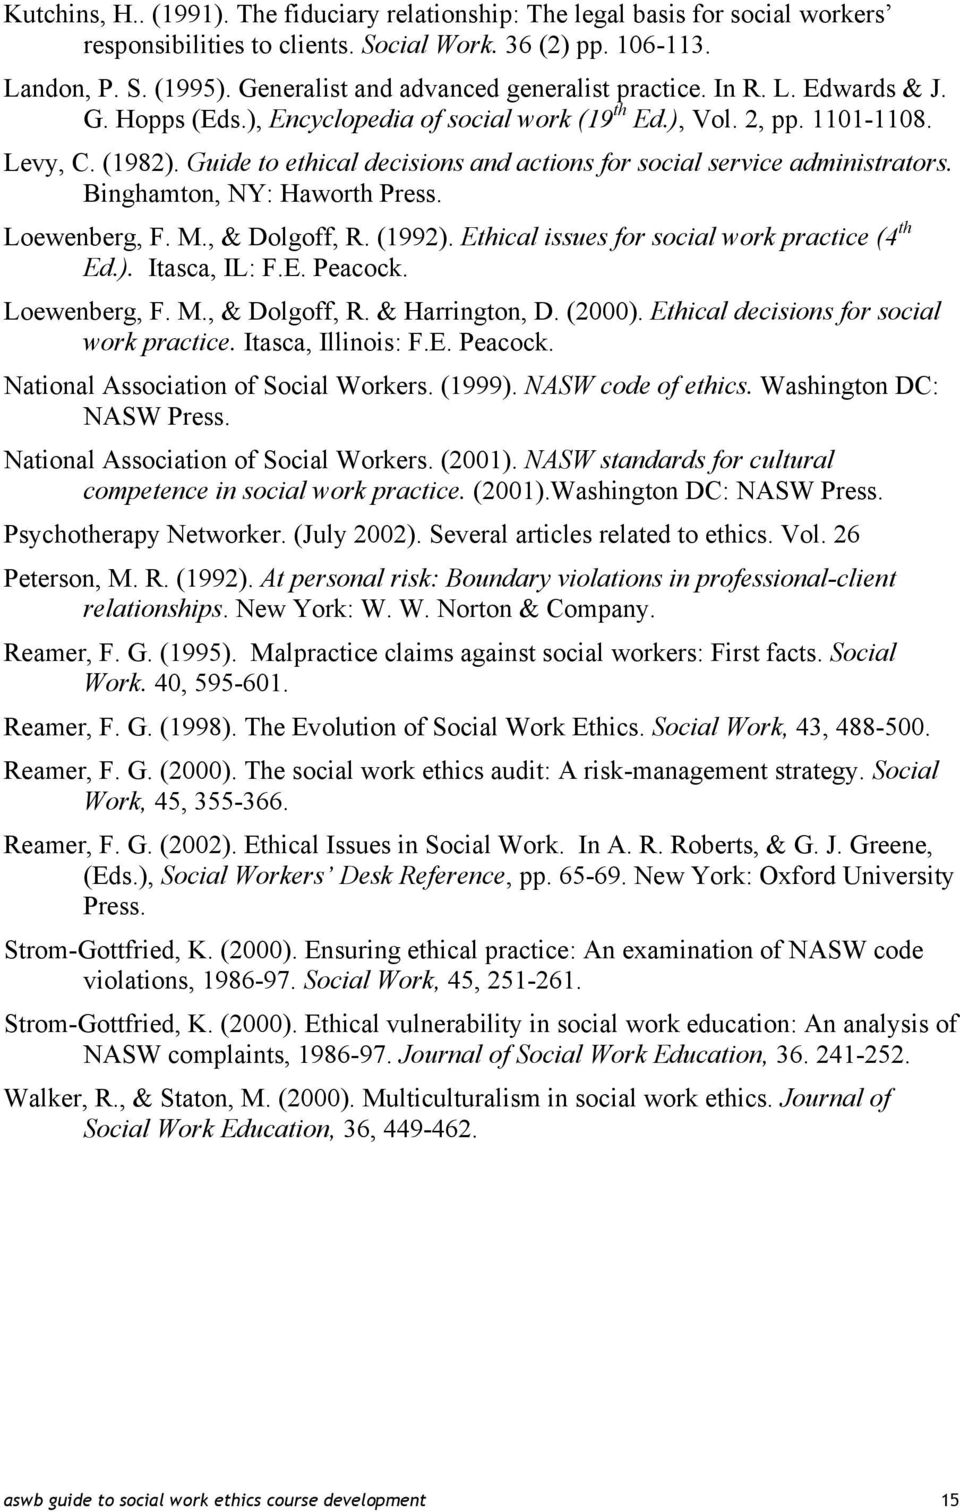 Guide to ethical decisions and actions for social service administrators. Binghamton, NY: Haworth Press. Loewenberg, F. M., & Dolgoff, R. (1992). Ethical issues for social work practice (4 th Ed.). Itasca, IL: F.